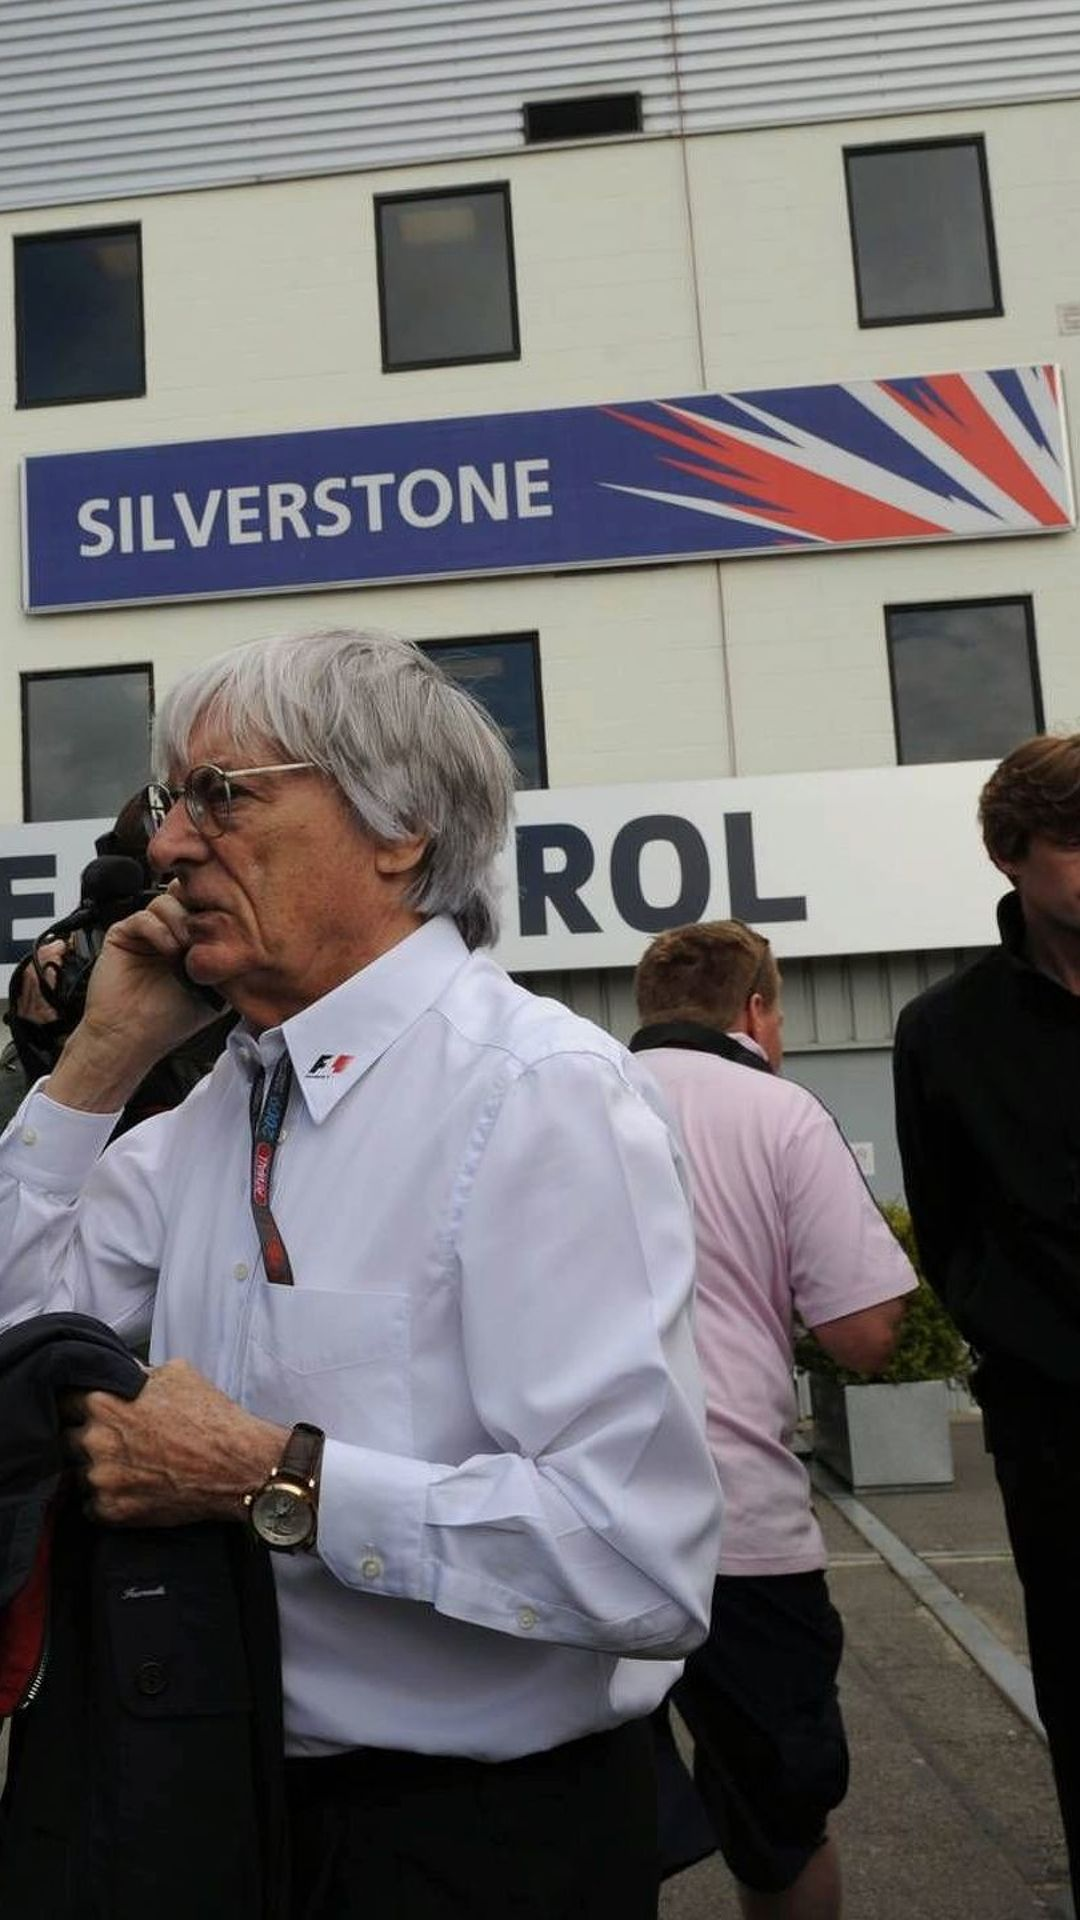 Ecclestone gives Silverstone two days to sign contract